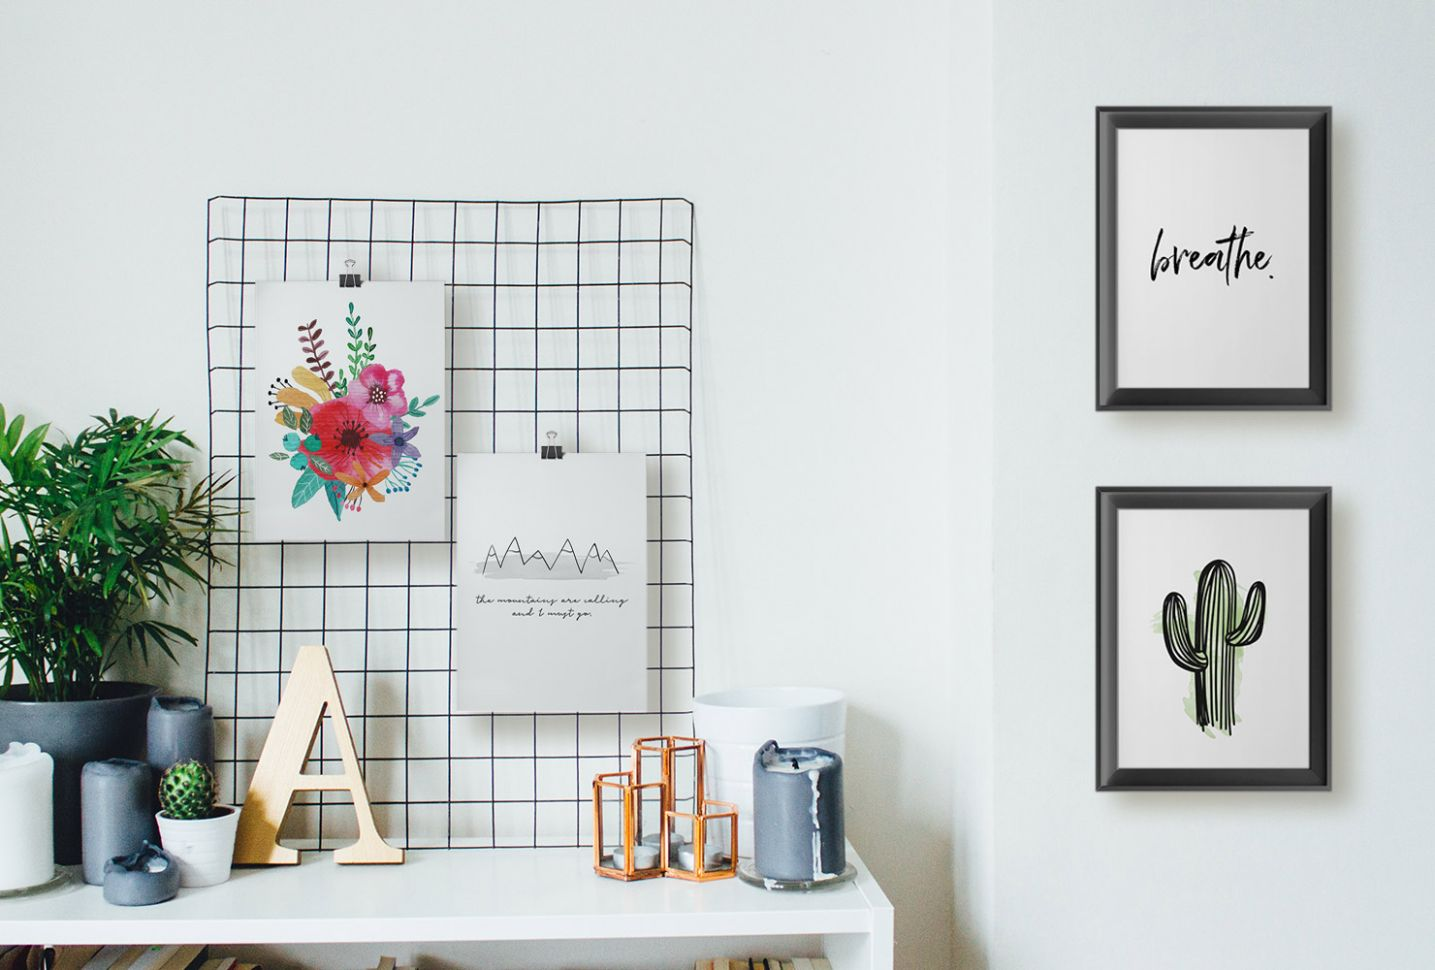 11 Unique DIY Wall Art Ideas (With Printables) | Shutterfly - quirky wall decor ideas